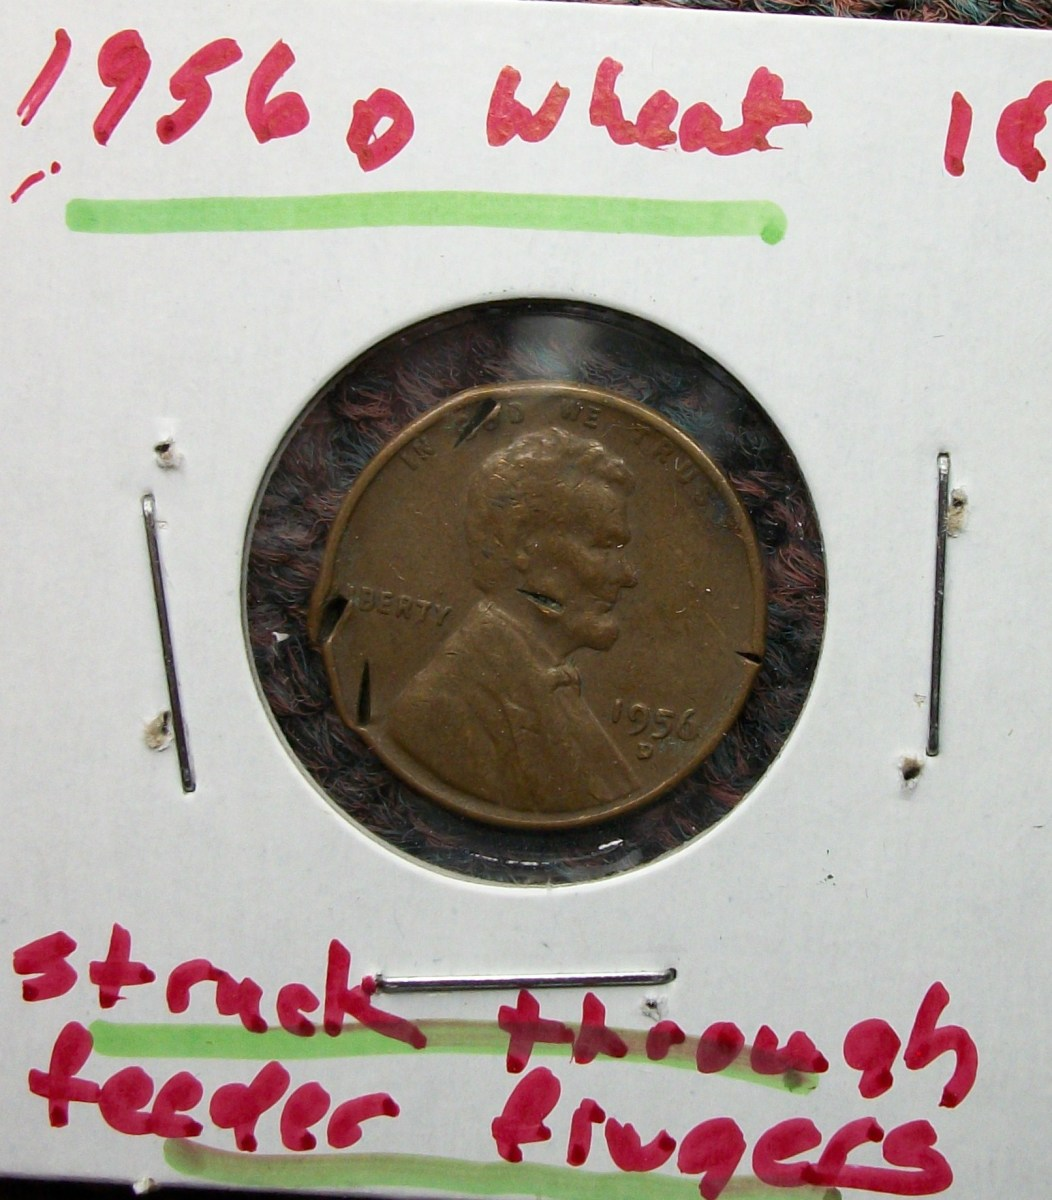 1956D Lincoln Wheat Leaf Penny  Struck on Feeder Finger Error